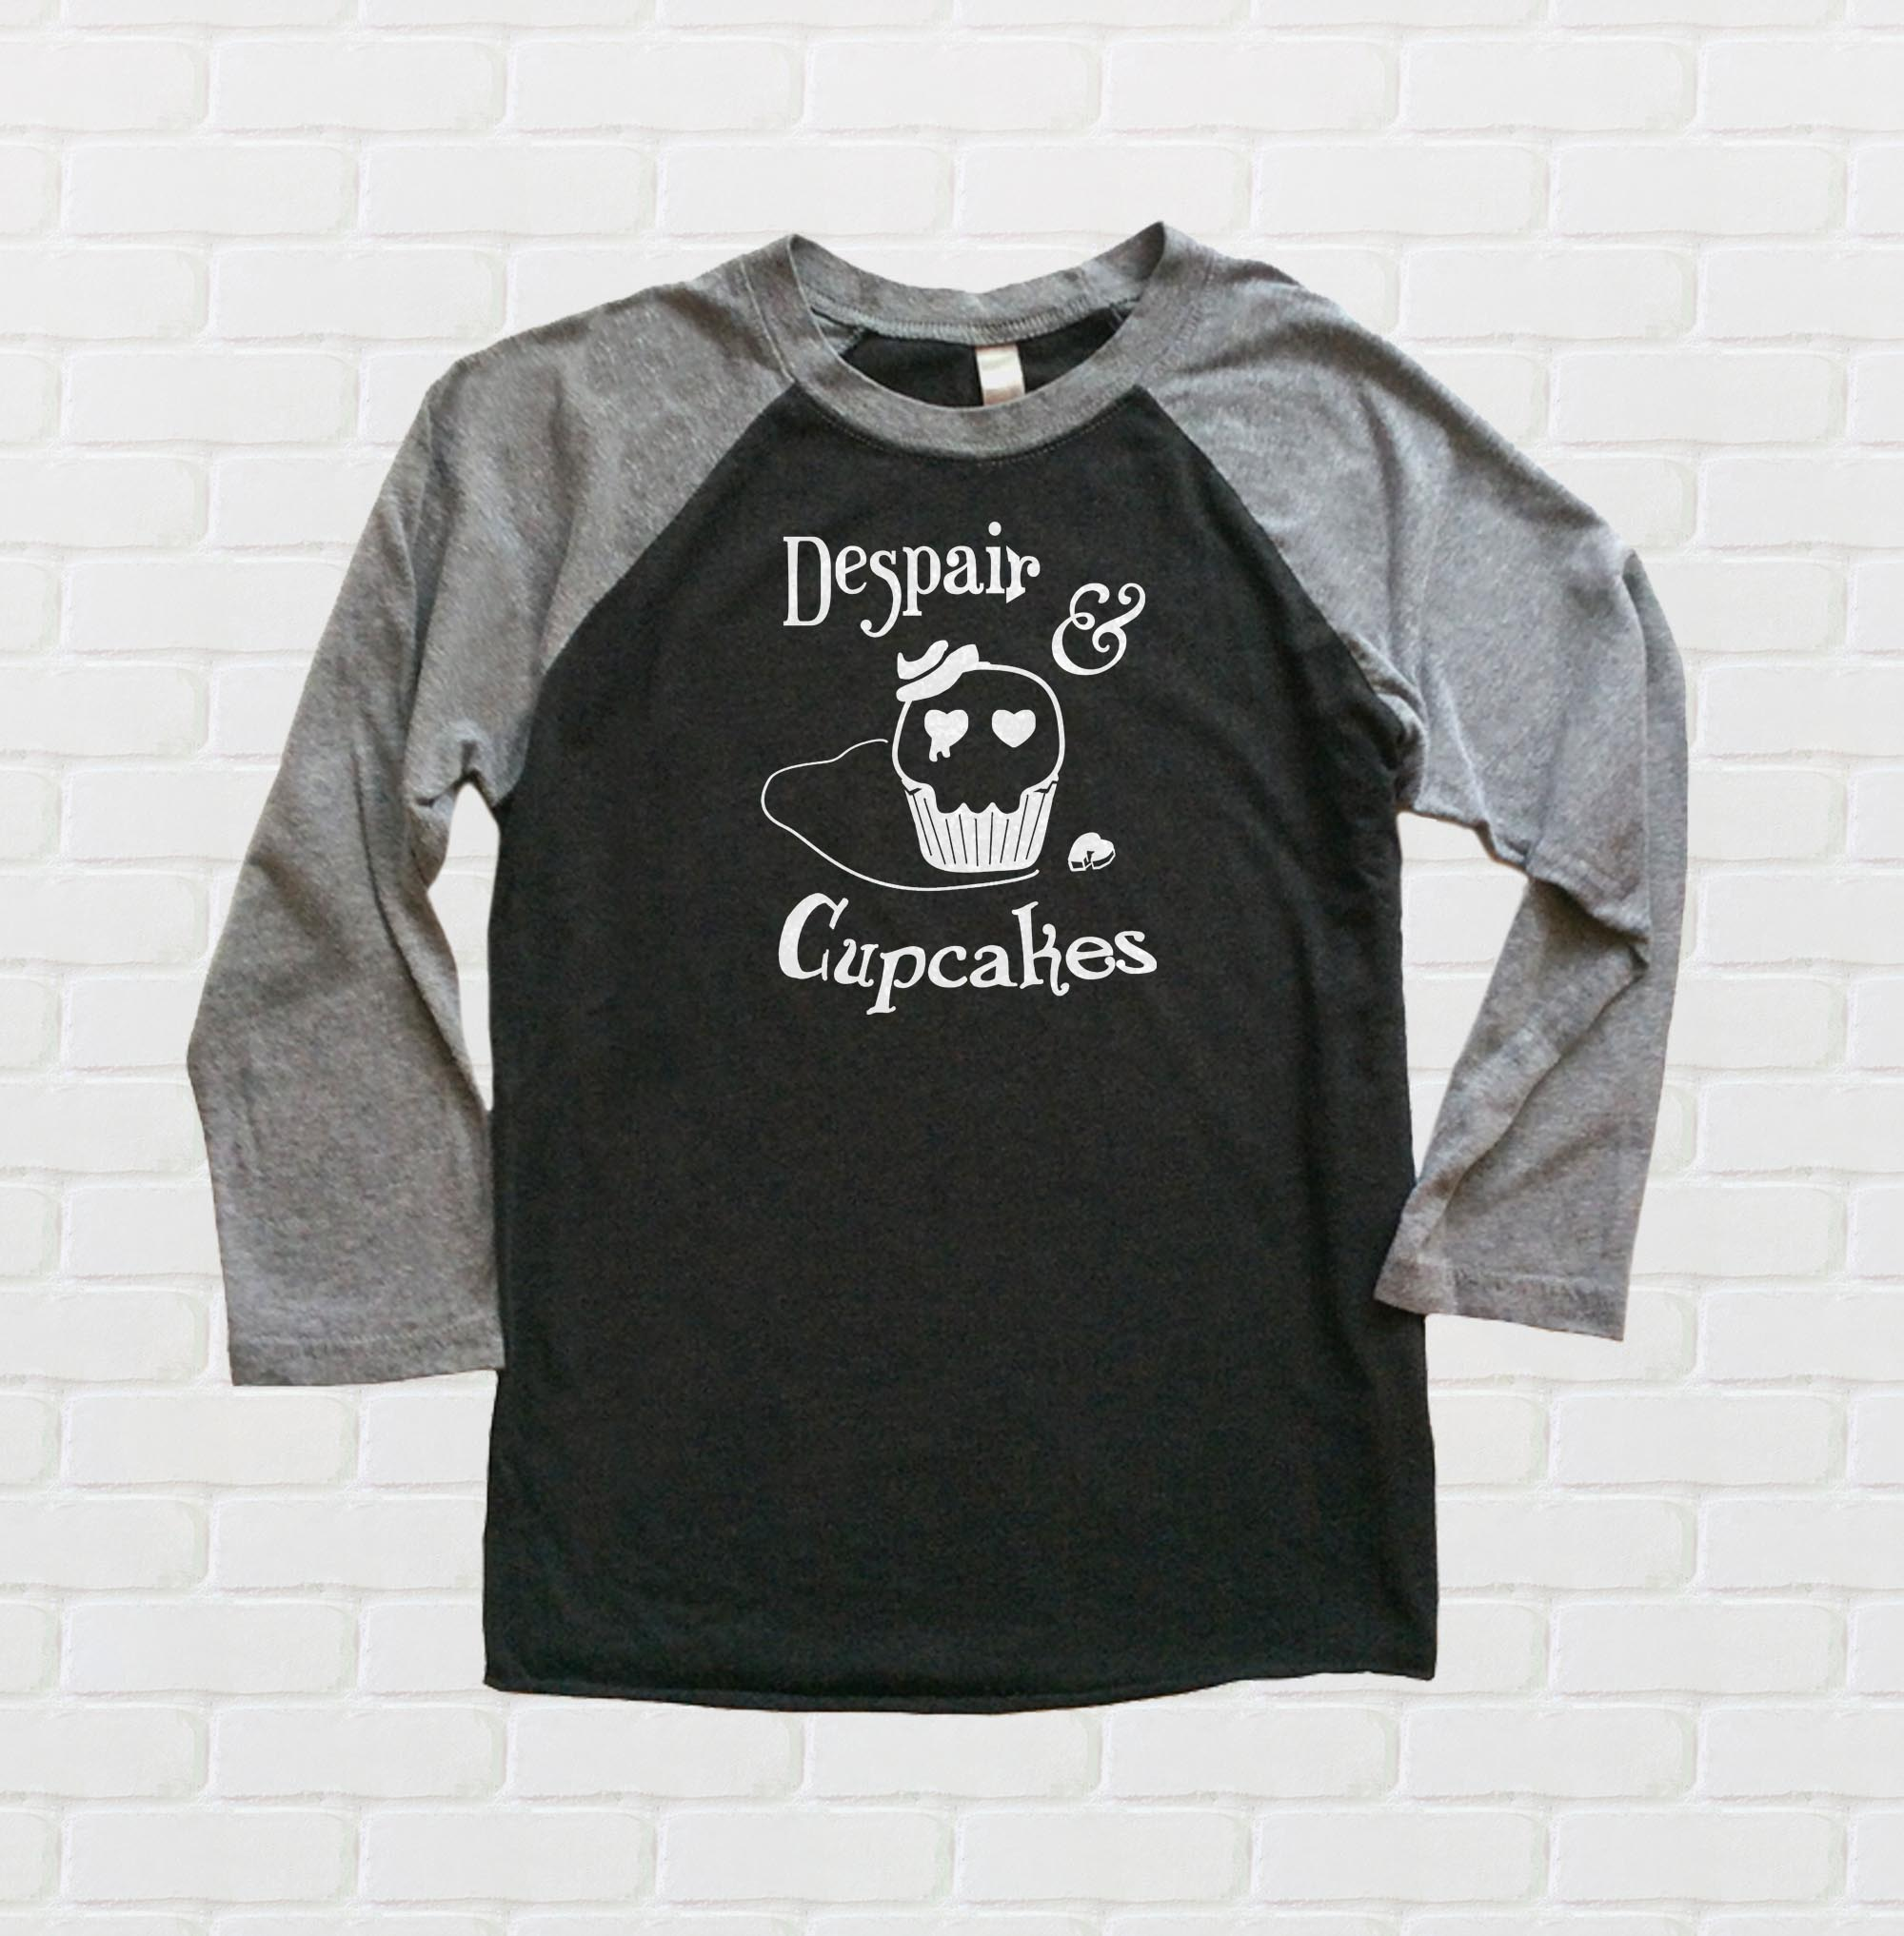 Despair and Cupcakes Raglan T-shirt 3/4 Sleeve - Black/Charcoal Grey